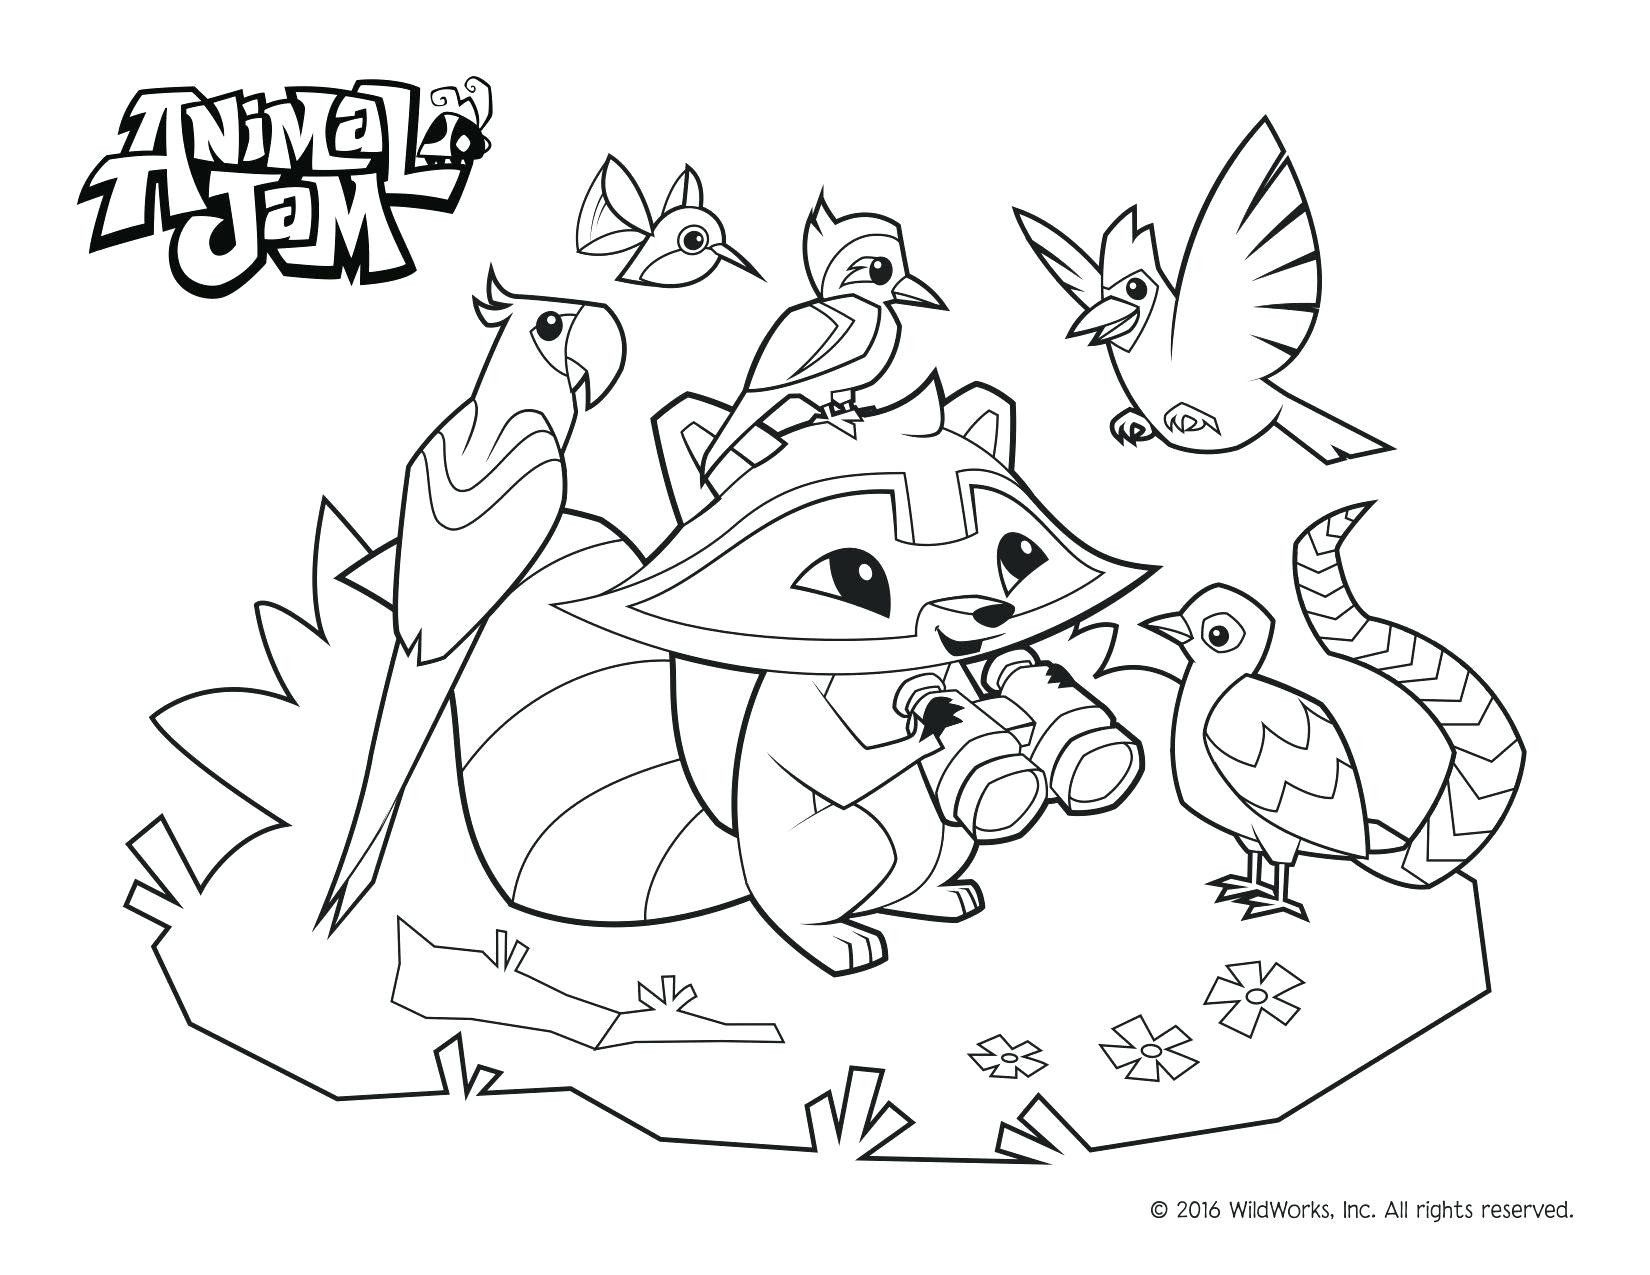 Animal Jam Coloring Pages Best Of Snow Leopard Coloring Sheet Axionsheet Animal Coloring Pages Animal Jam Animal Coloring Books